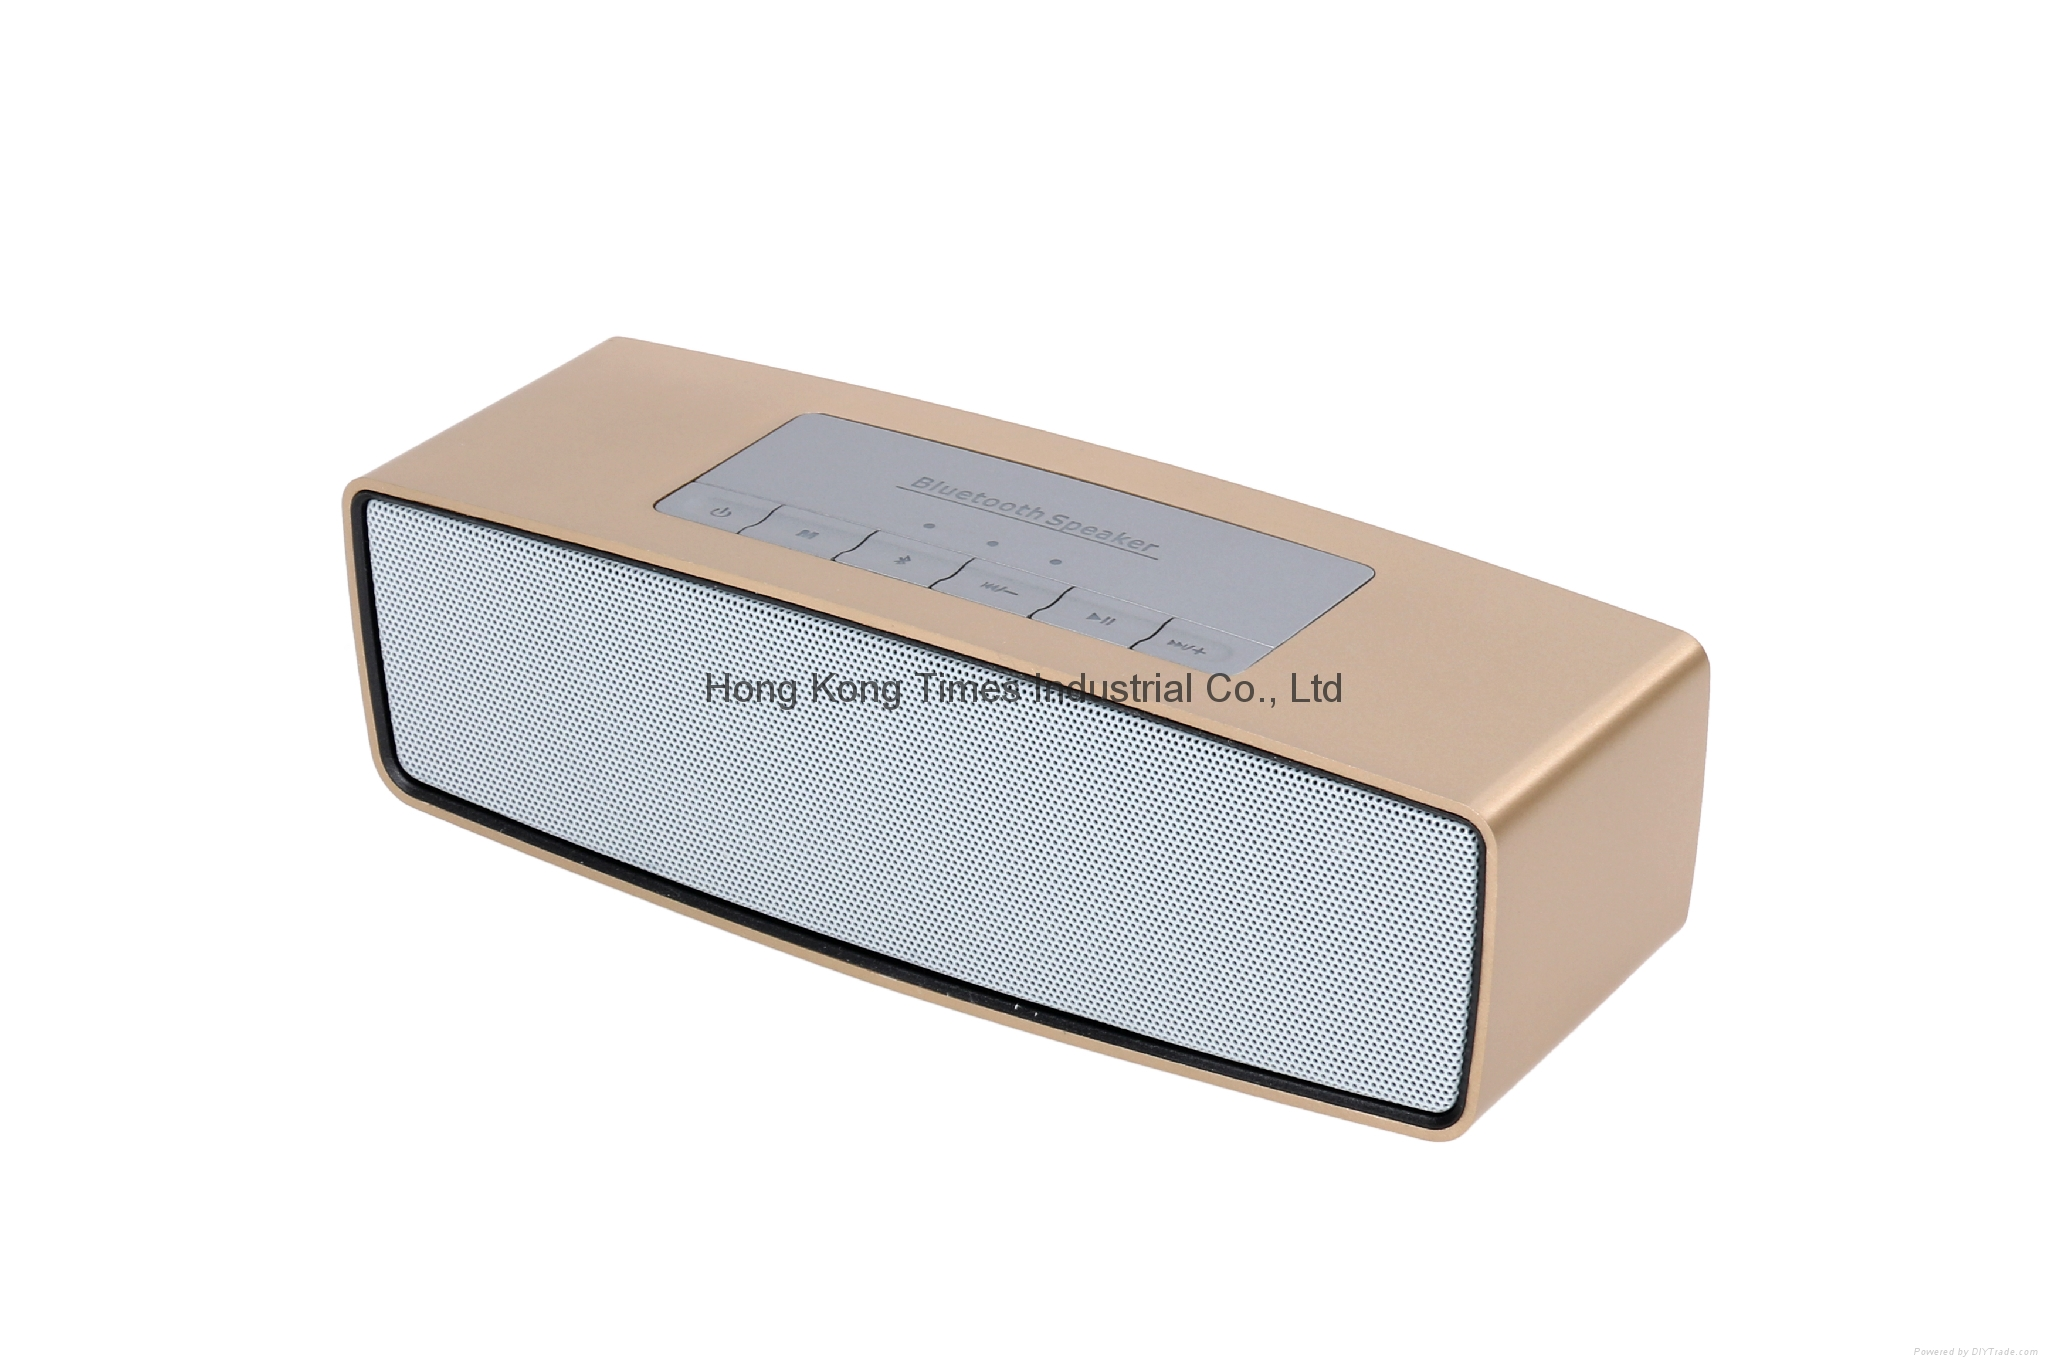 Multimedia Speaker Box, Wireless Bluetooh Speaker for Computer/Mobile Phone, MP3 11